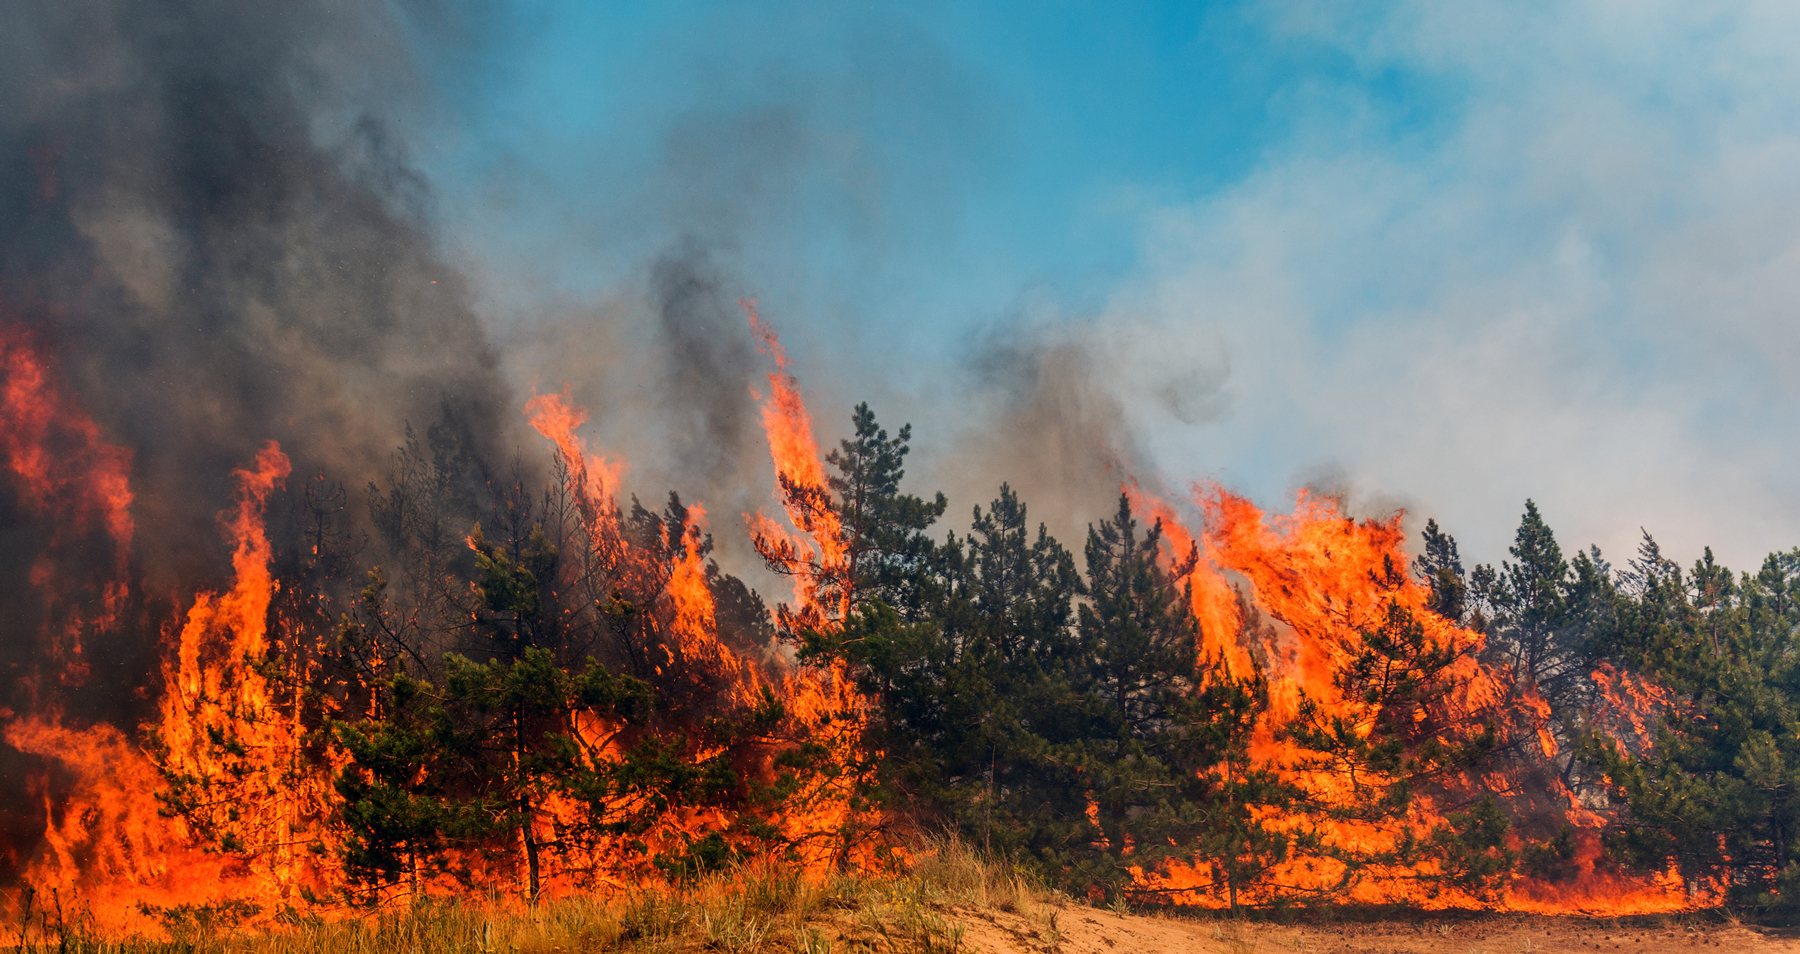 wildfire burning trees and grass on property